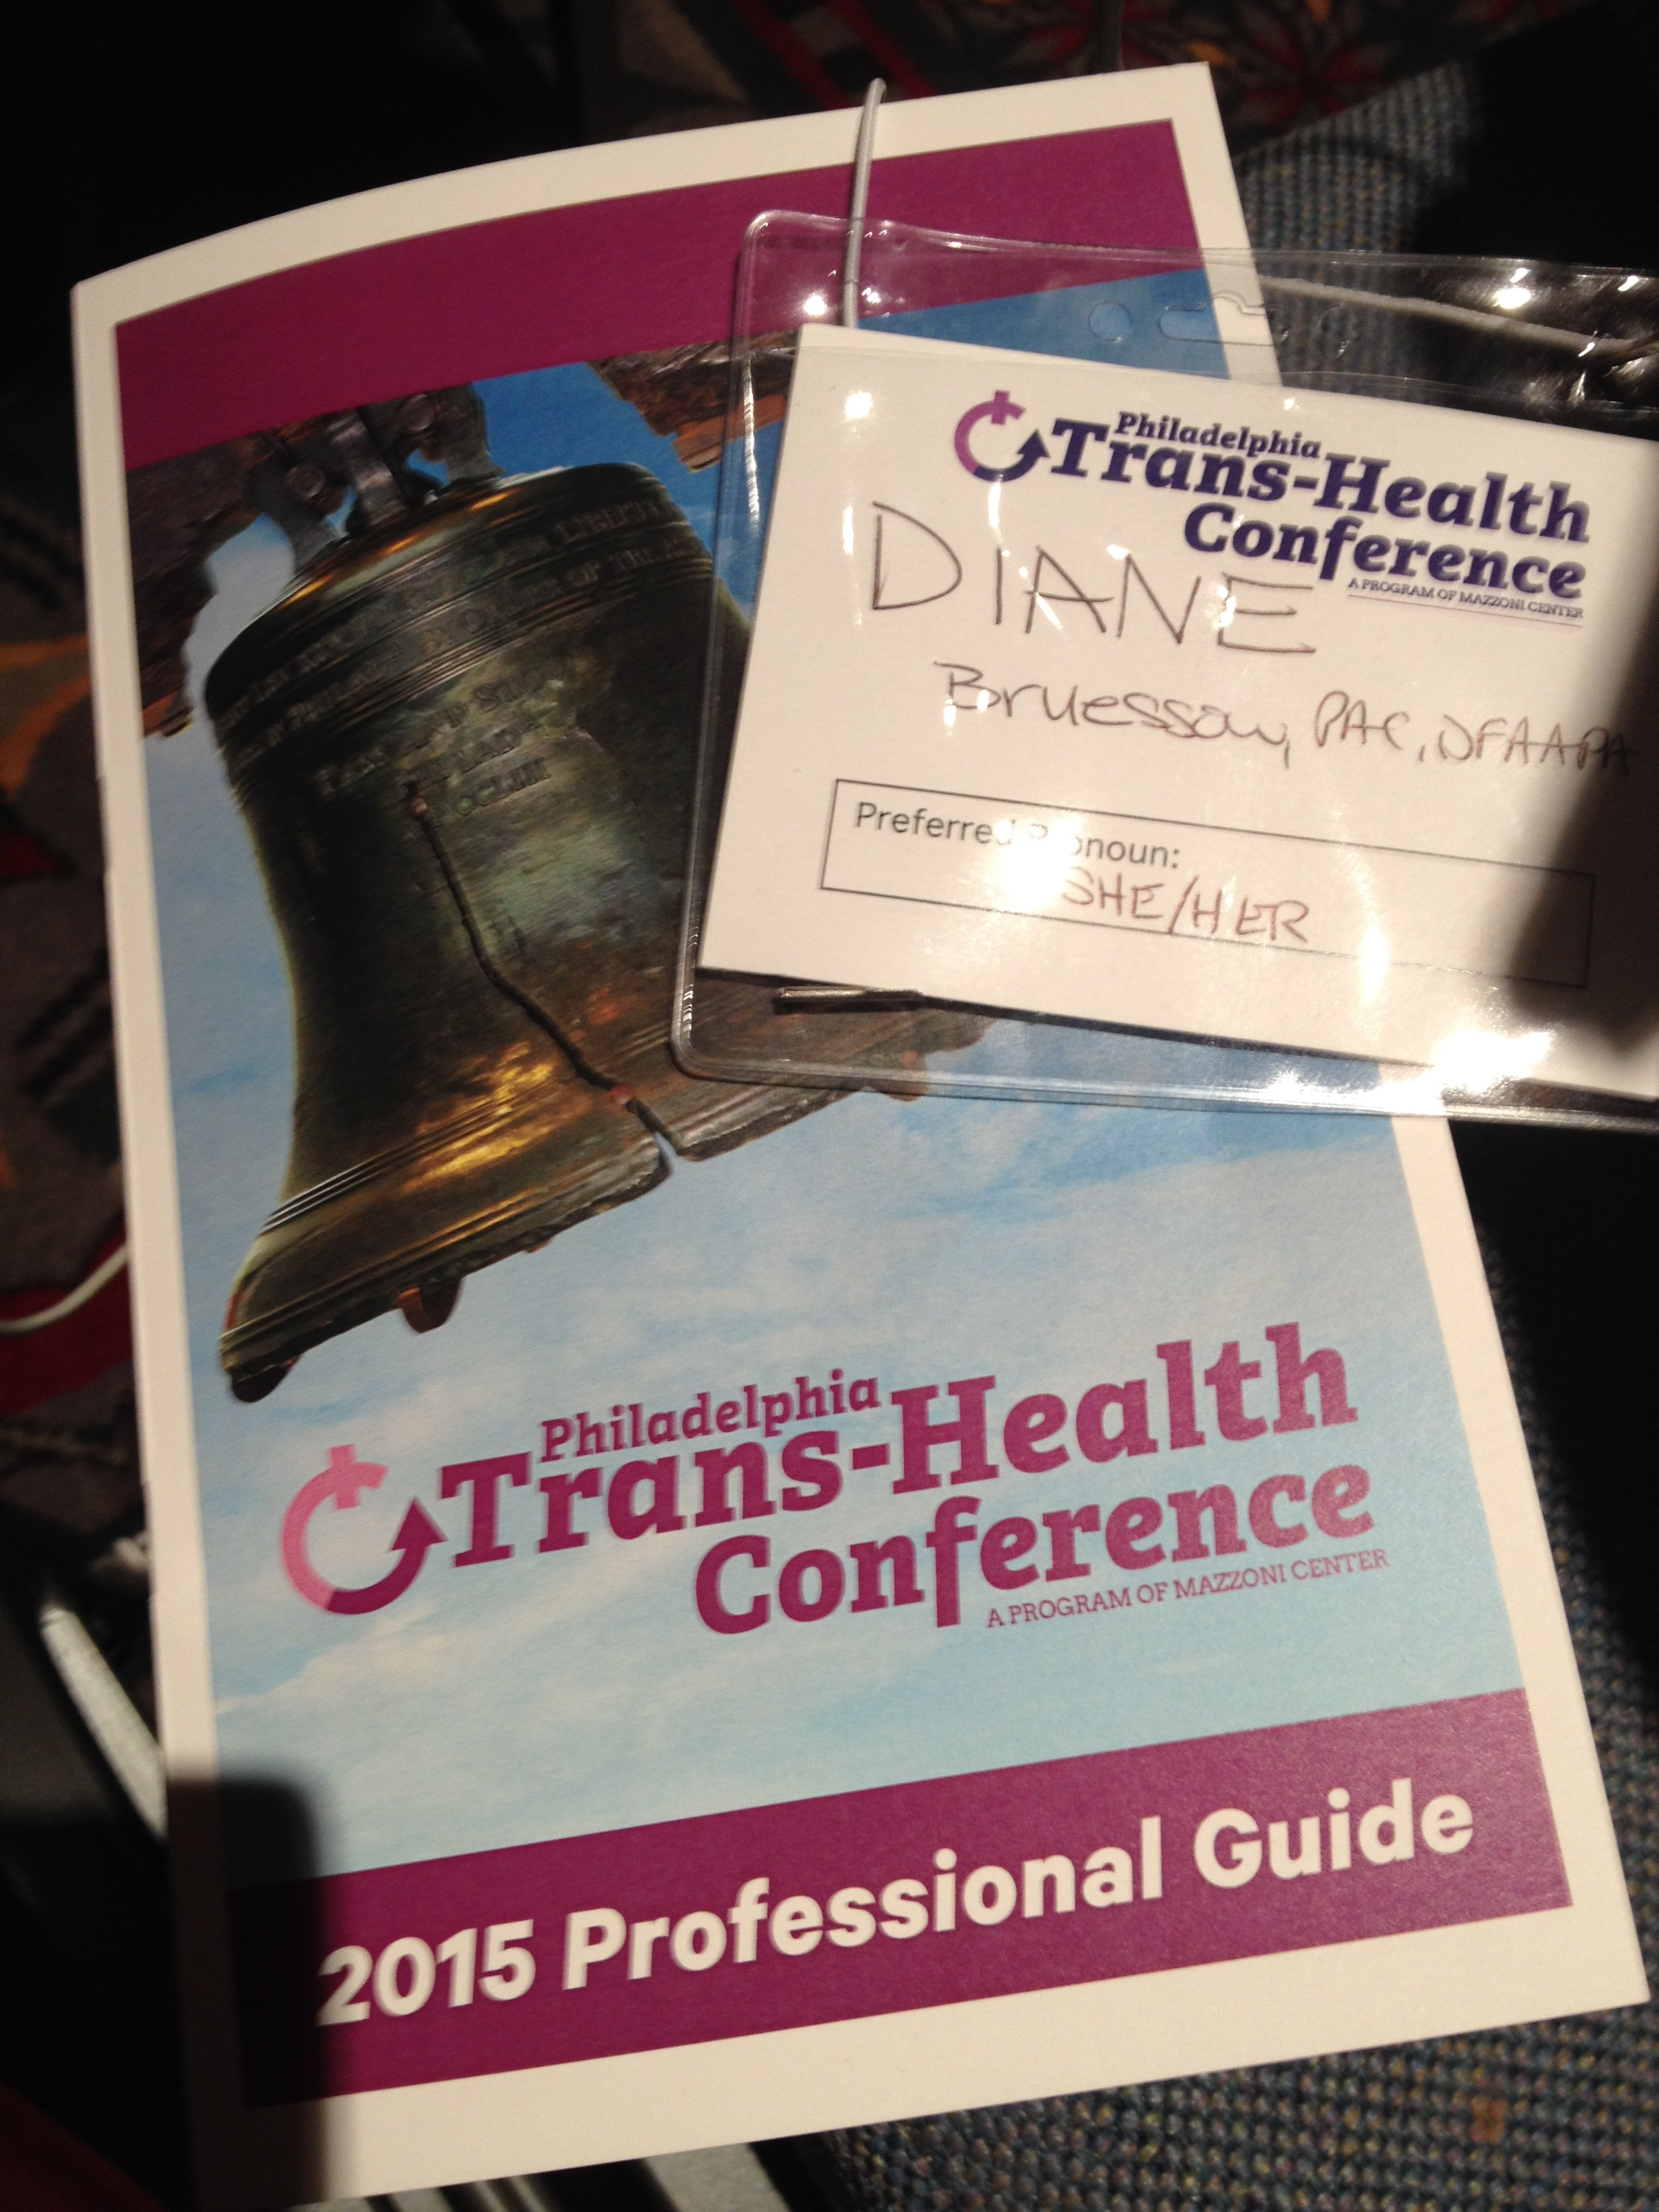 I've either presented at or attended the Philly Trans-Health Conference since it's debut!